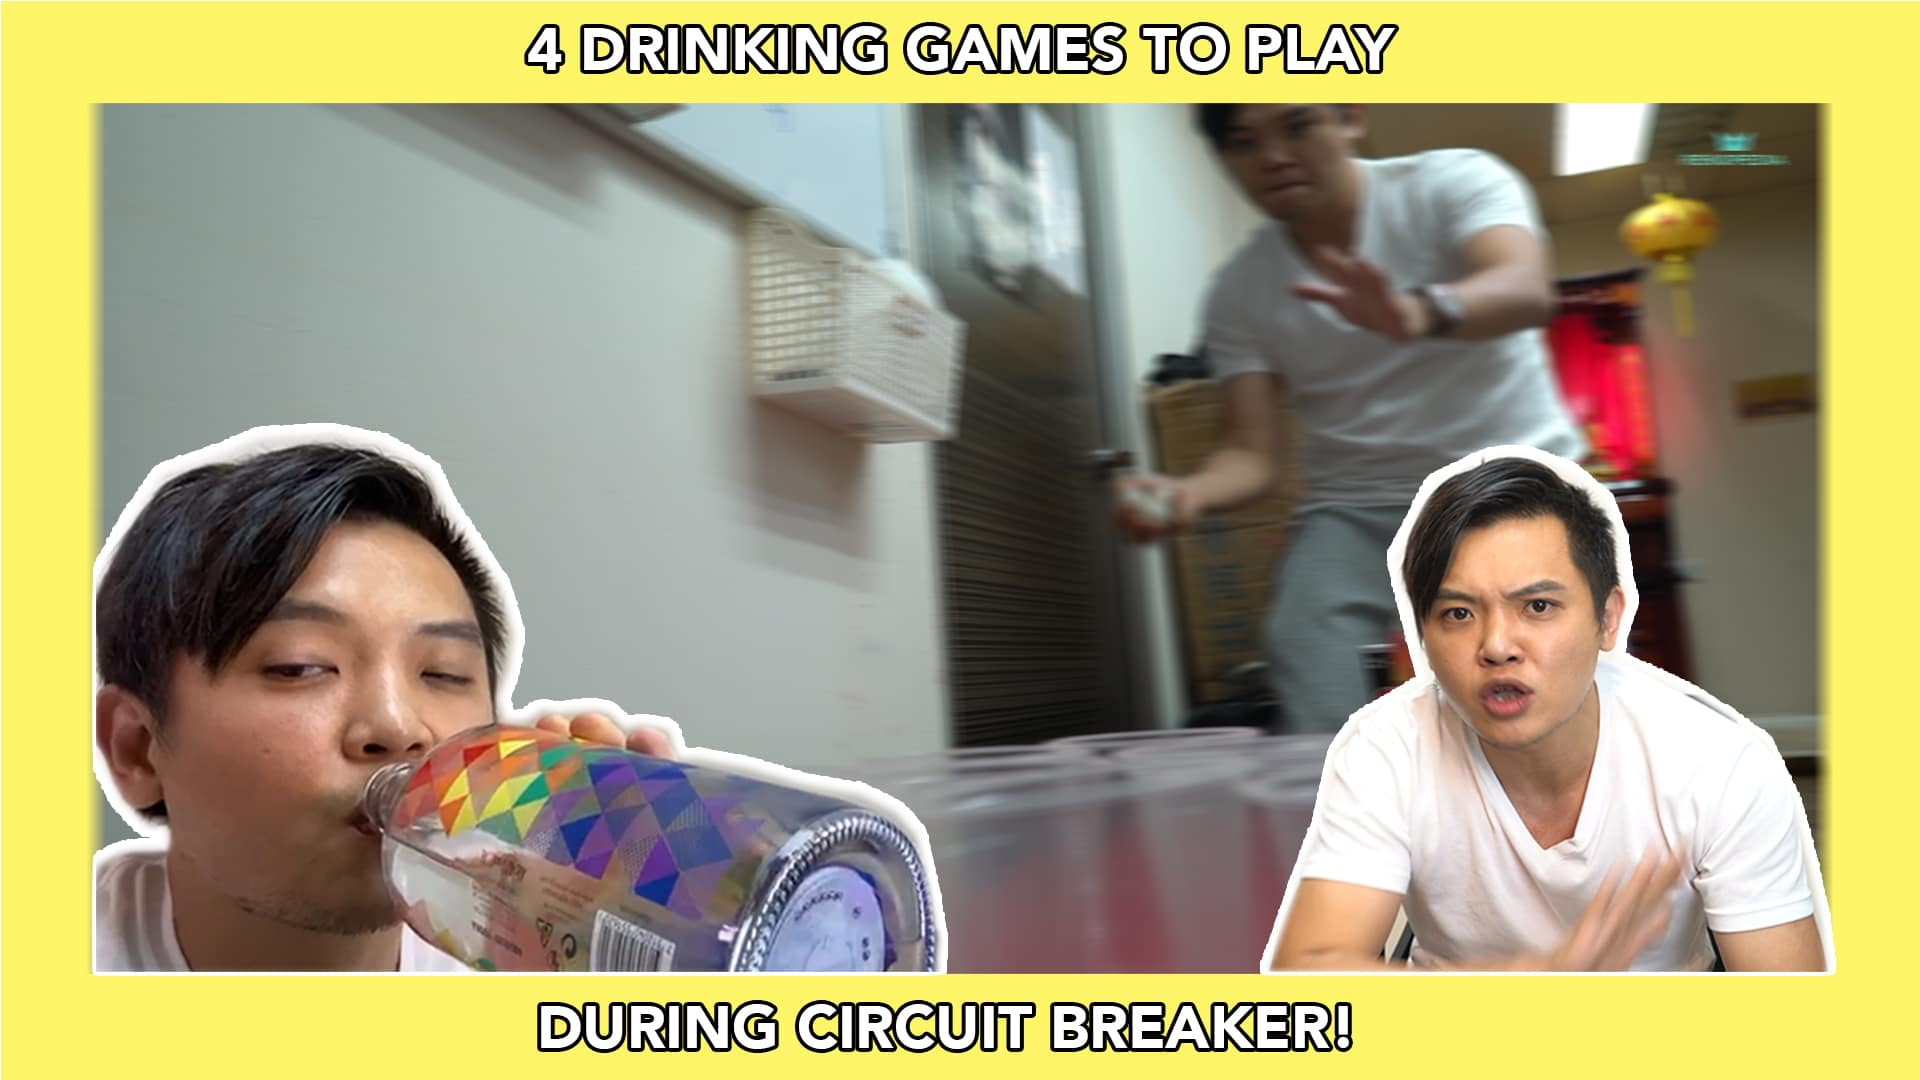 4 Drinking Games To Play During Circuit Breaker